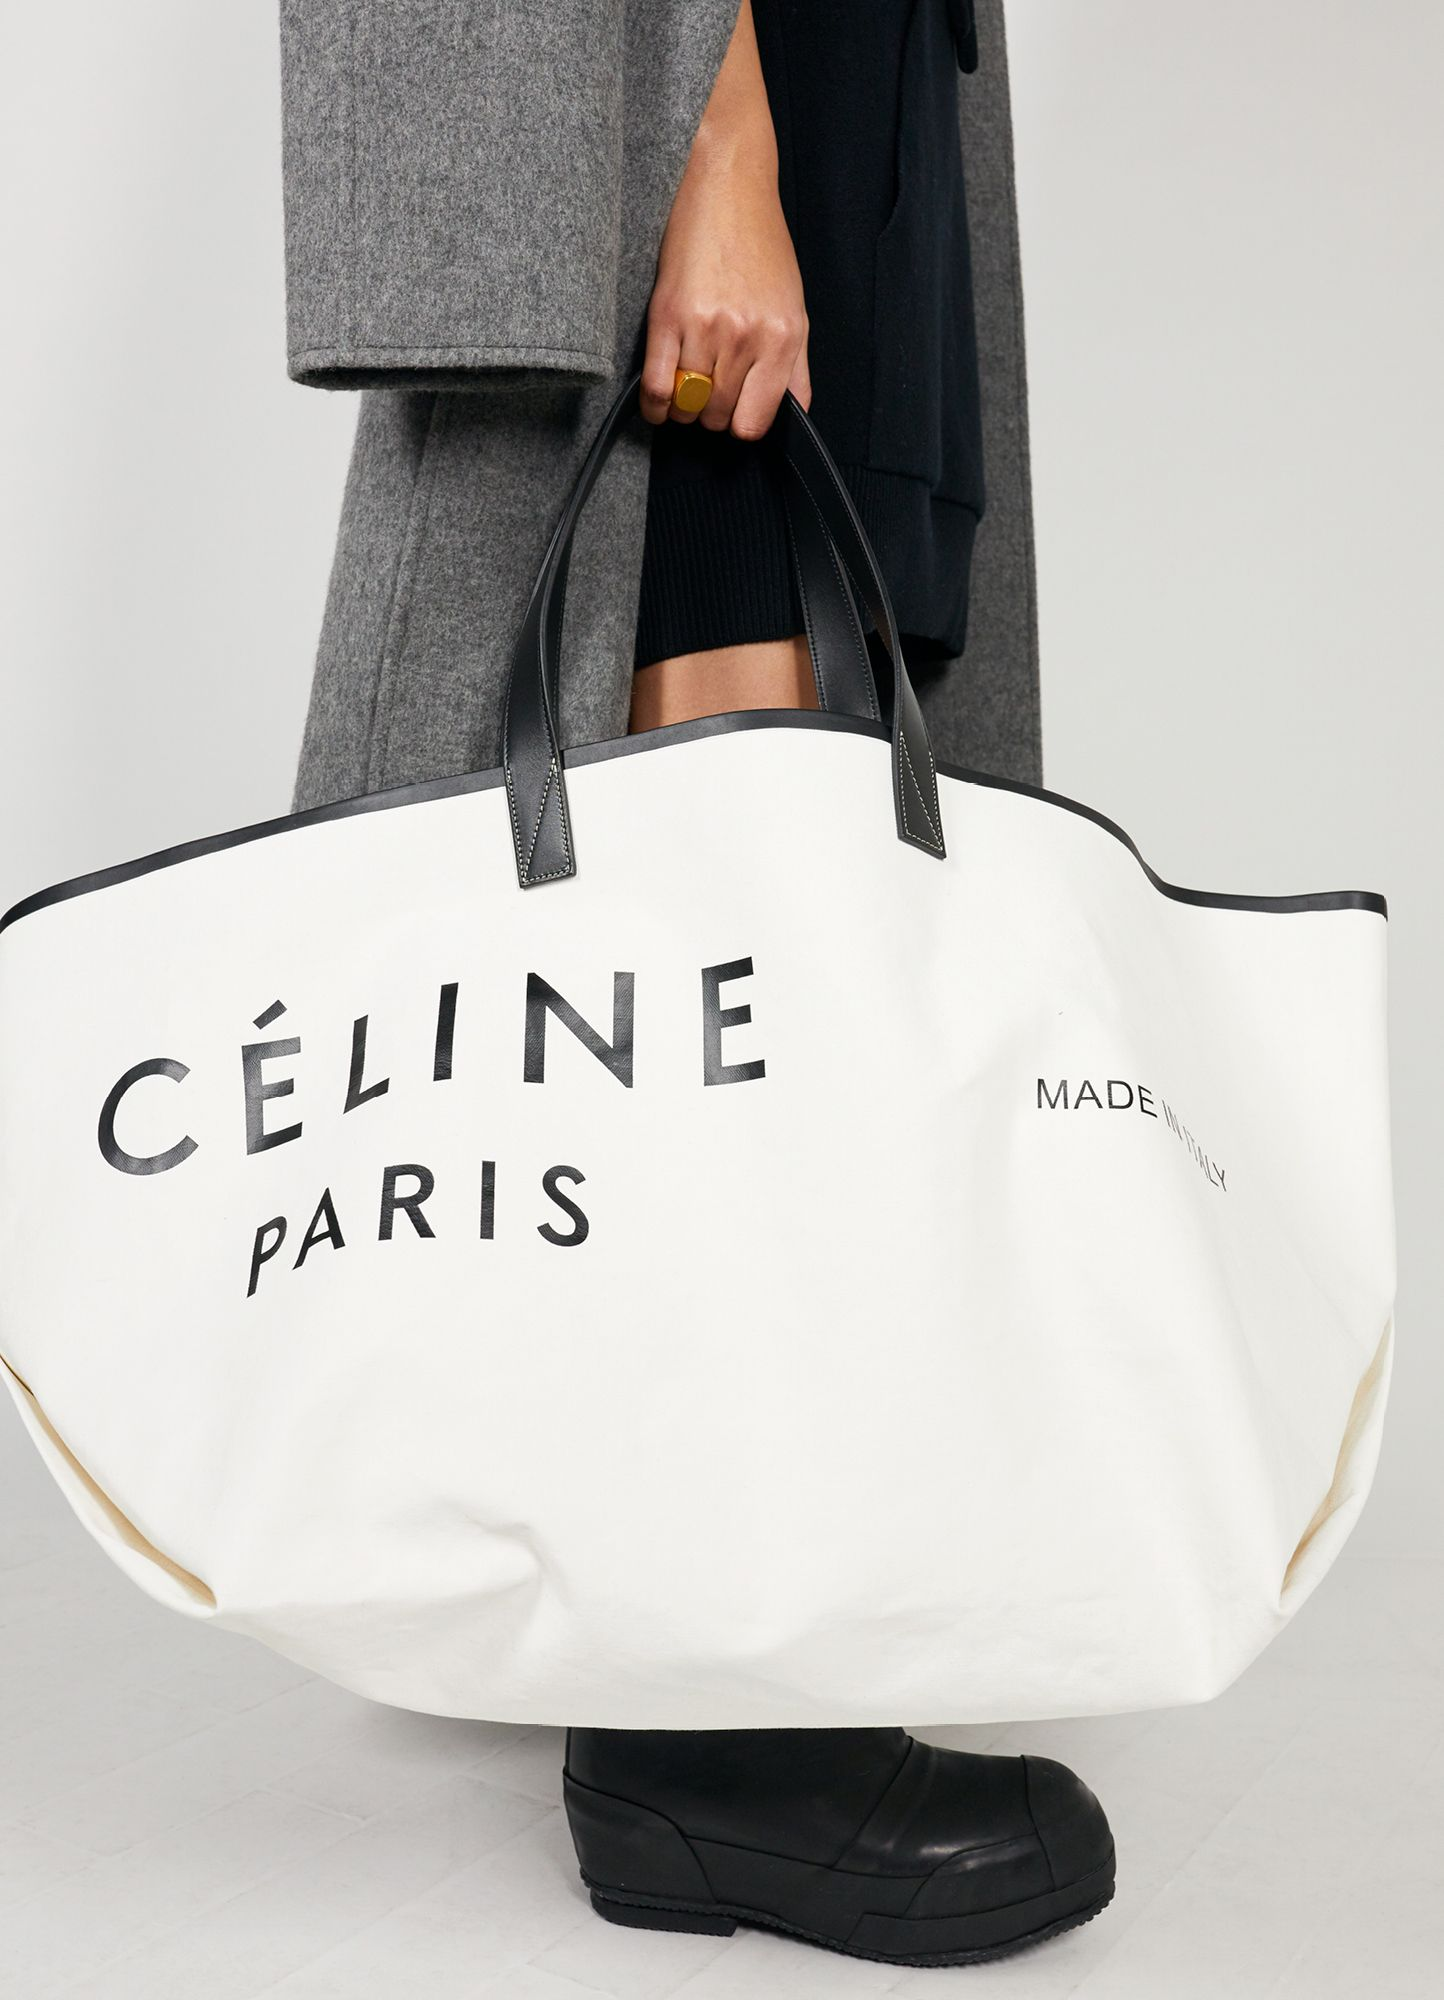 9fe302a87588 Made in Tote Cabas | accessories【2019】 | Celine tote bag、Celine ...